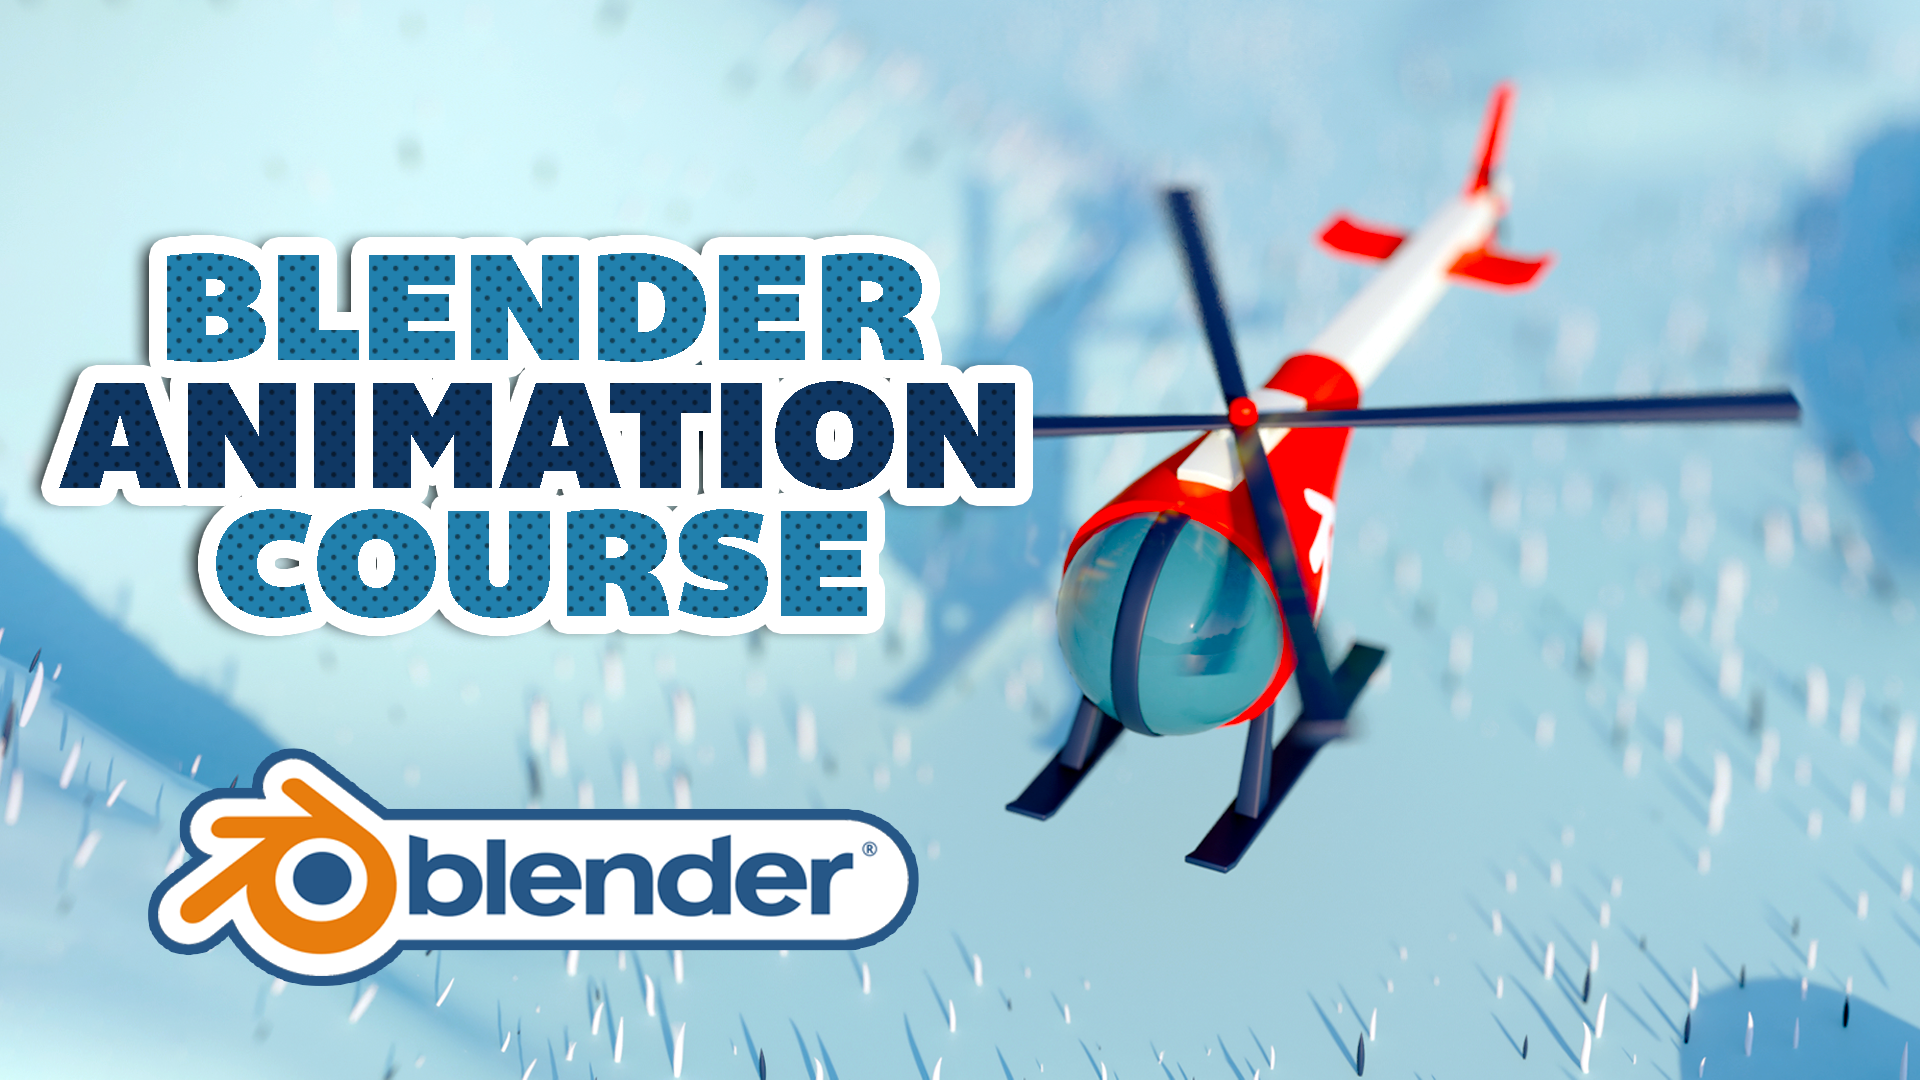 Helicopter Animation 3D Modeling Blender Academy Course